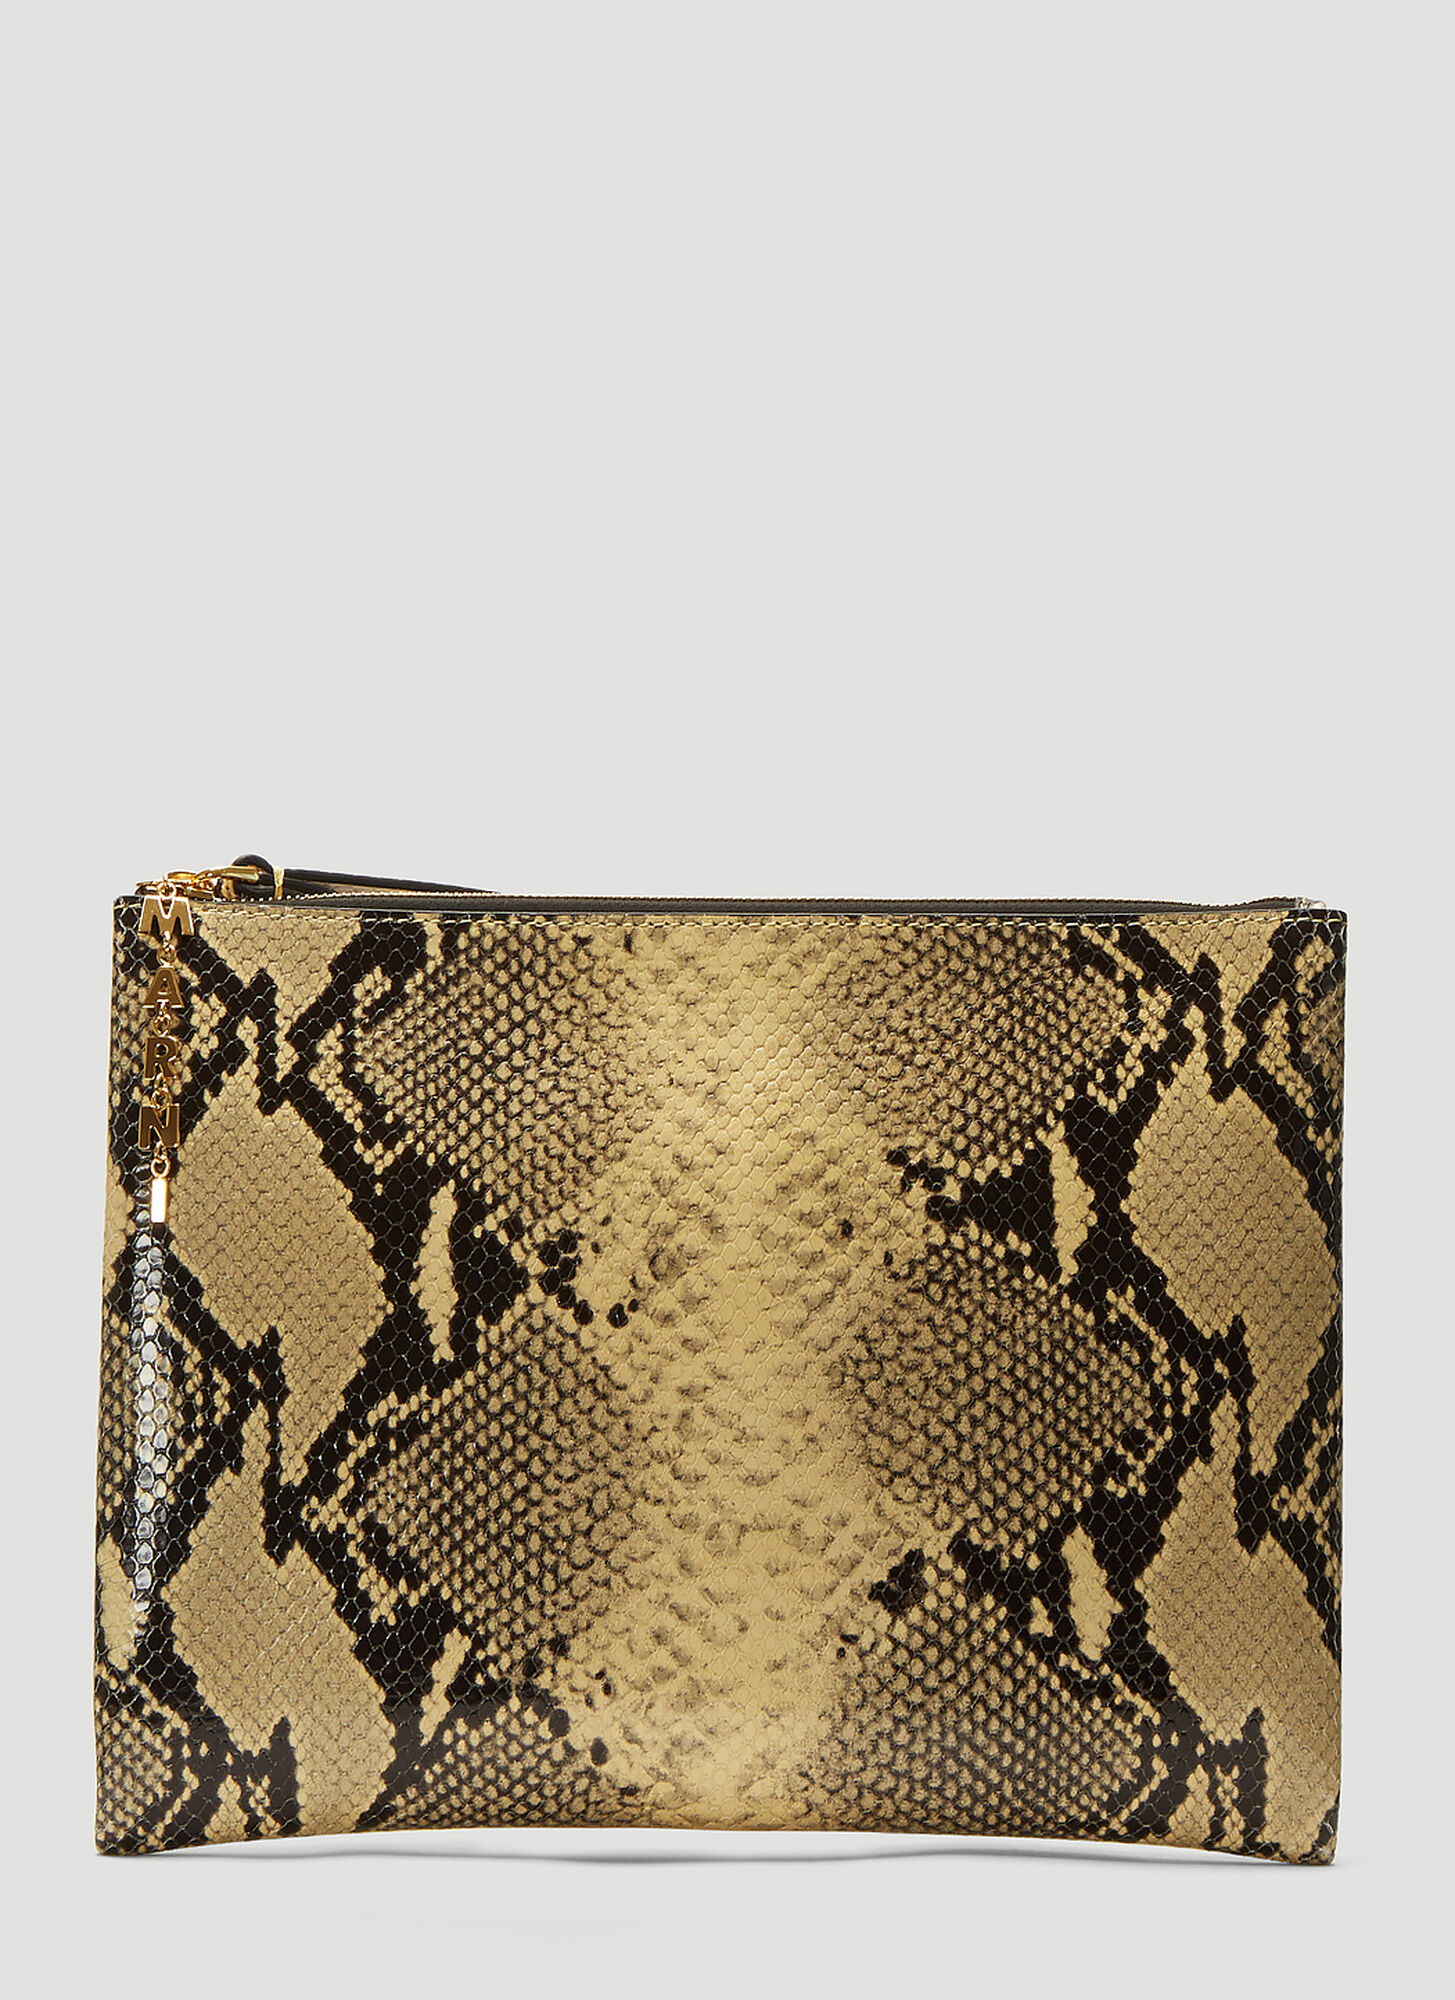 Photo of Marni Snake Print Clutch Bag in Beige - Marni Clutches